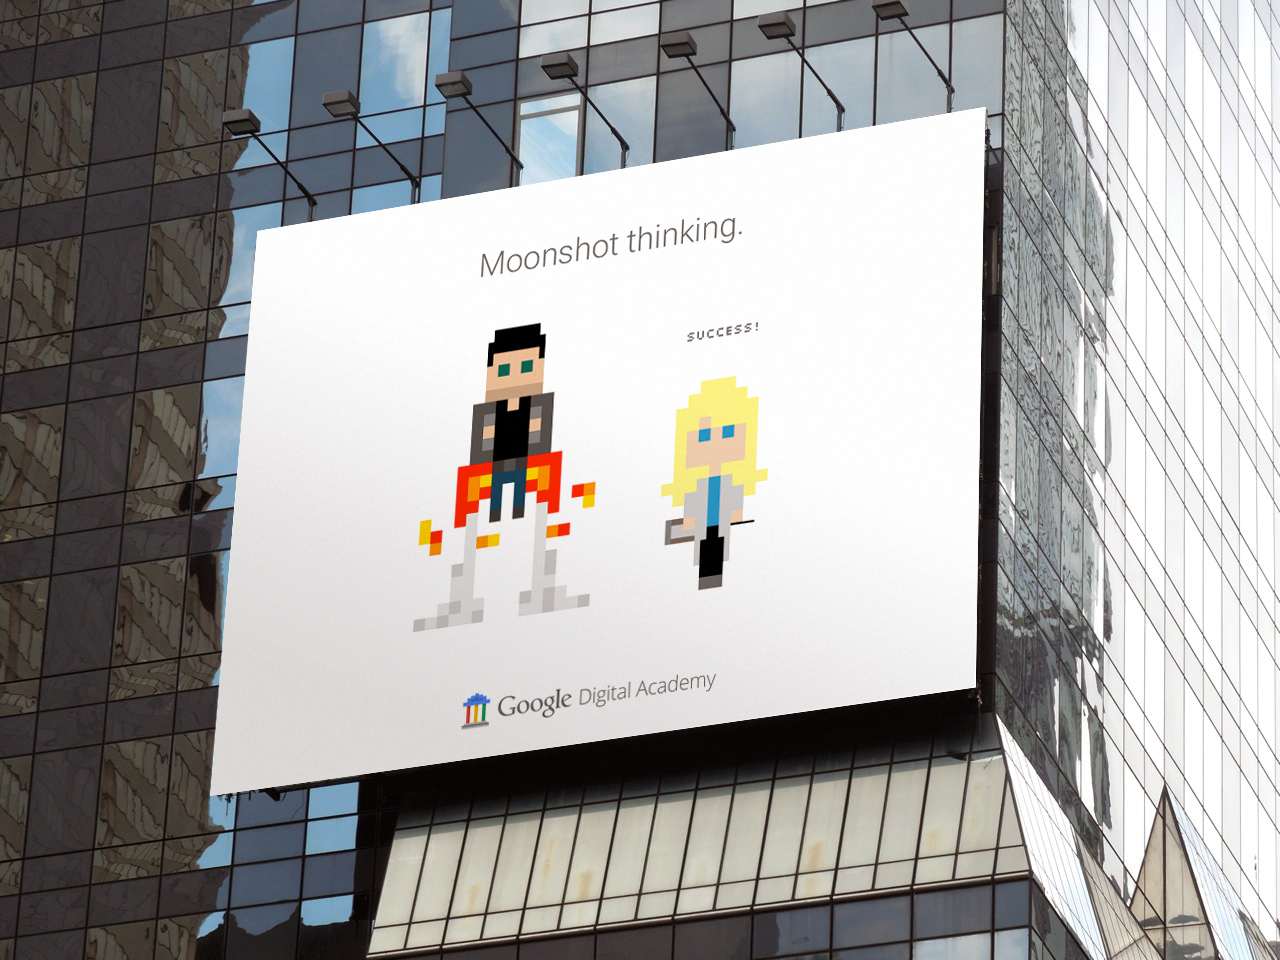 Google Digital Academy - Mascot Billboard Advertisement